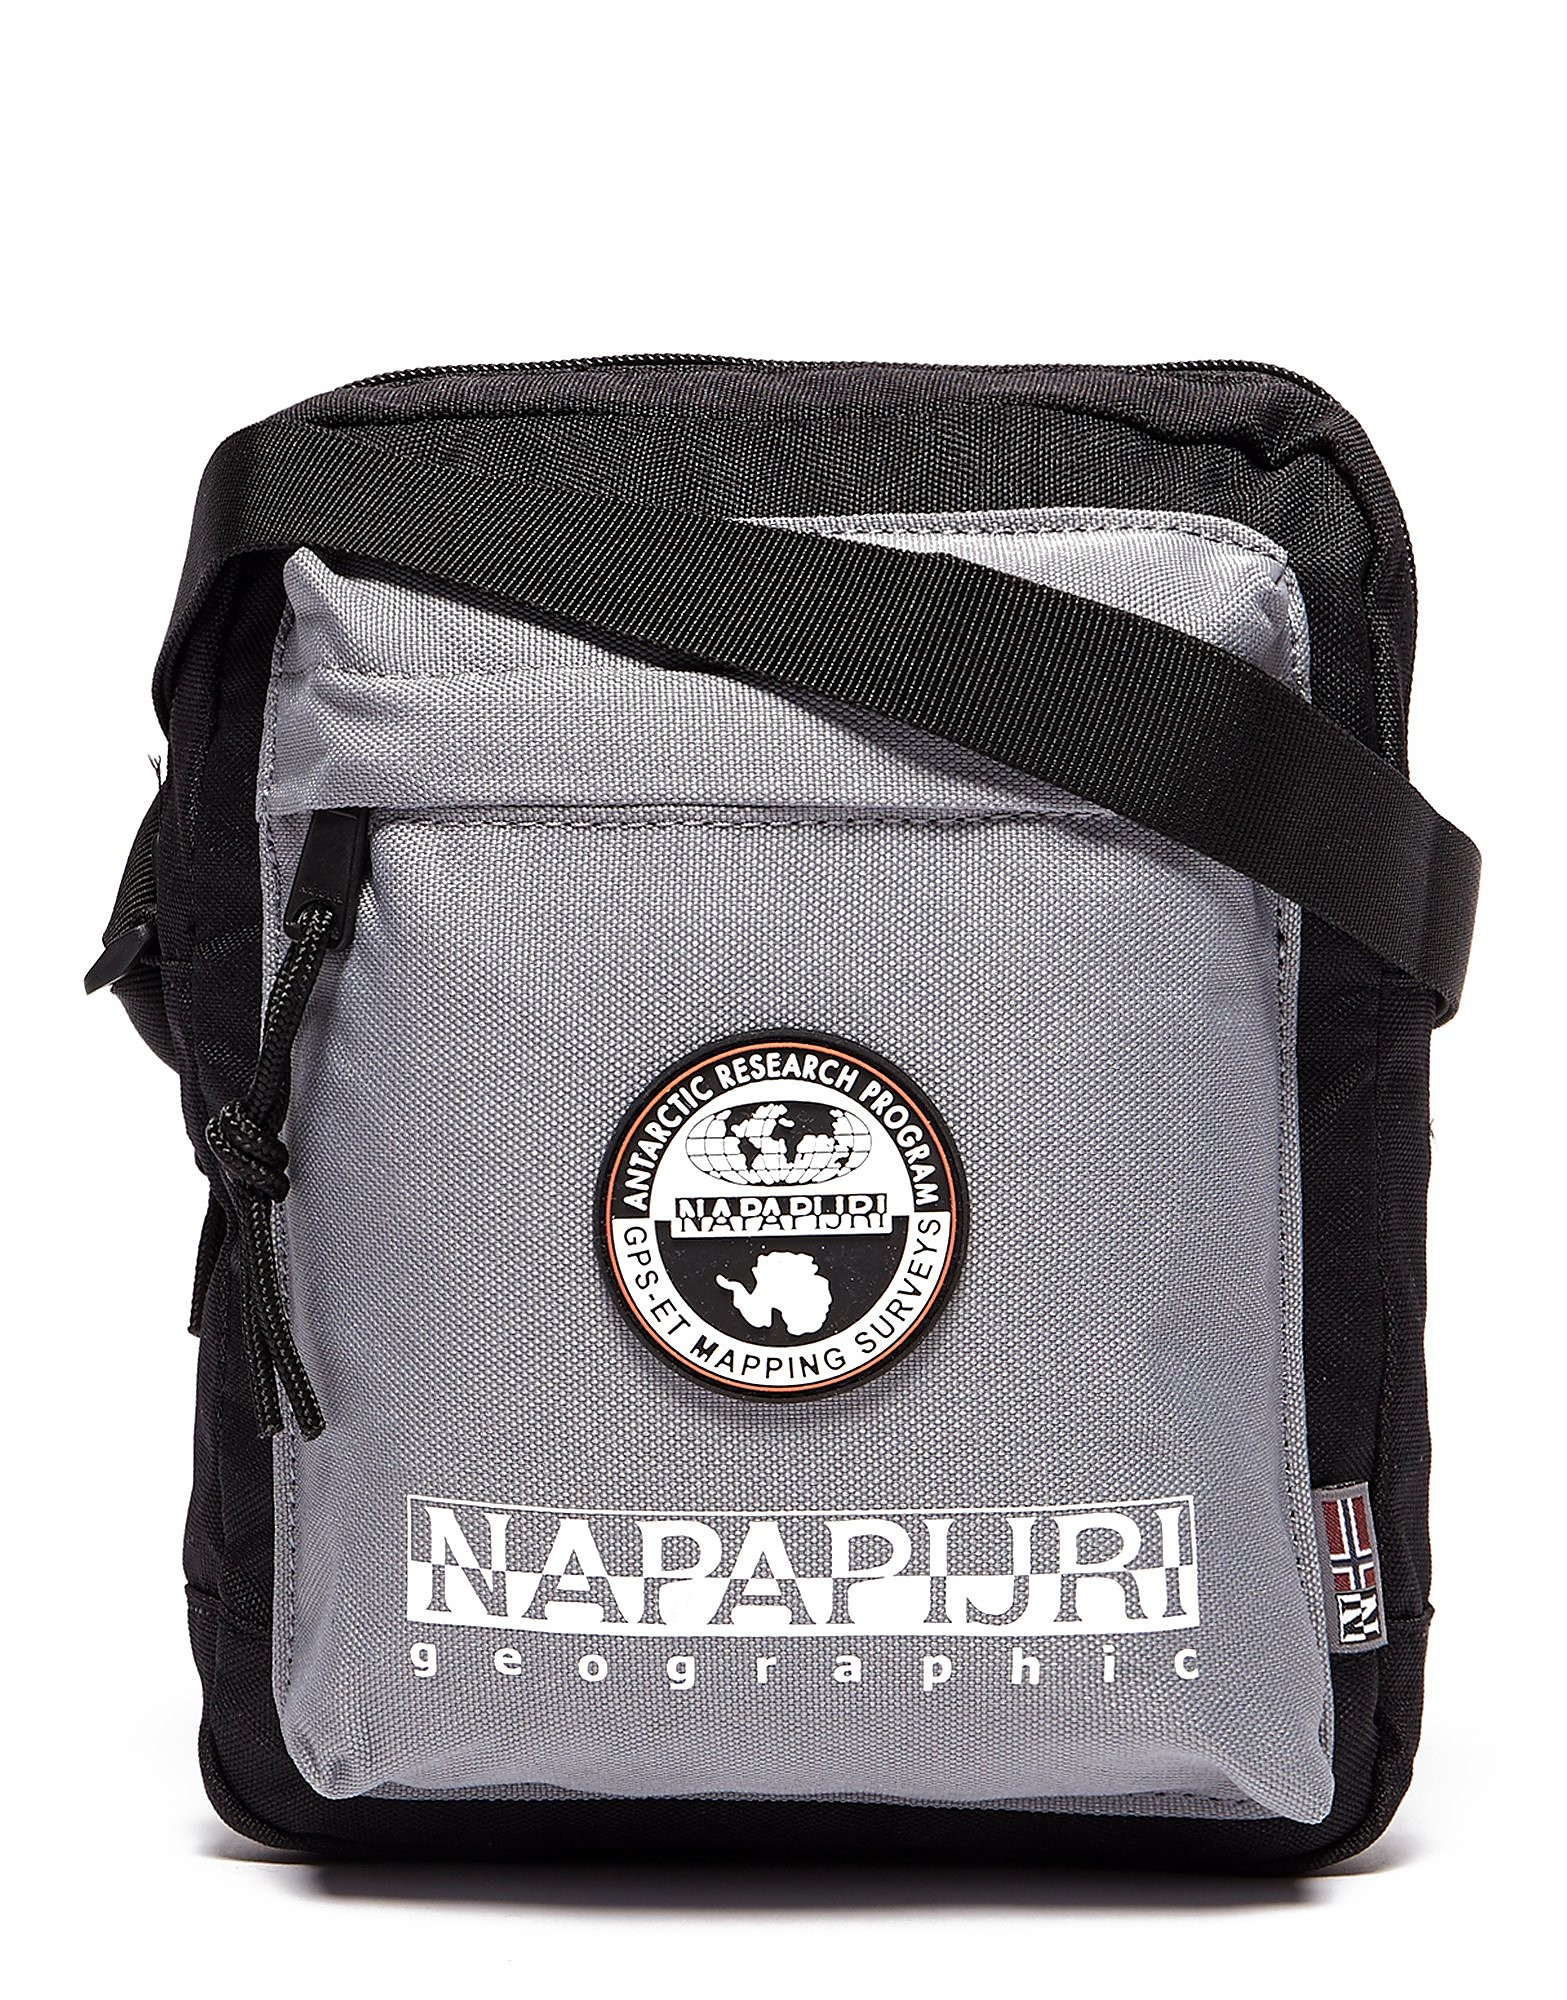 Napapijri Sac Happy Cross Body Bag